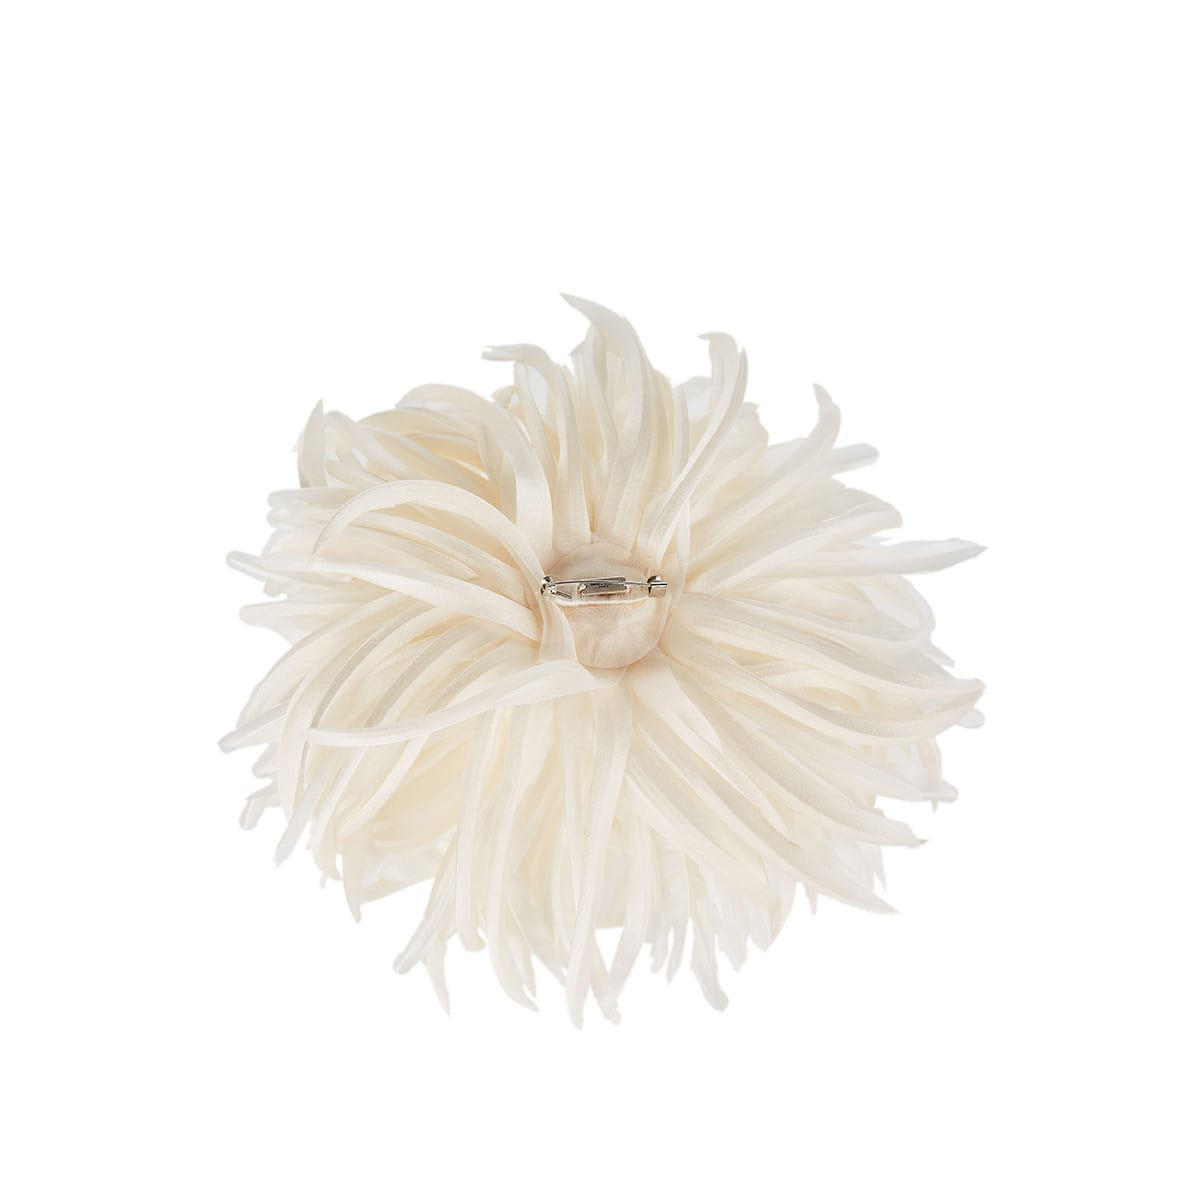 Flower silk brooch